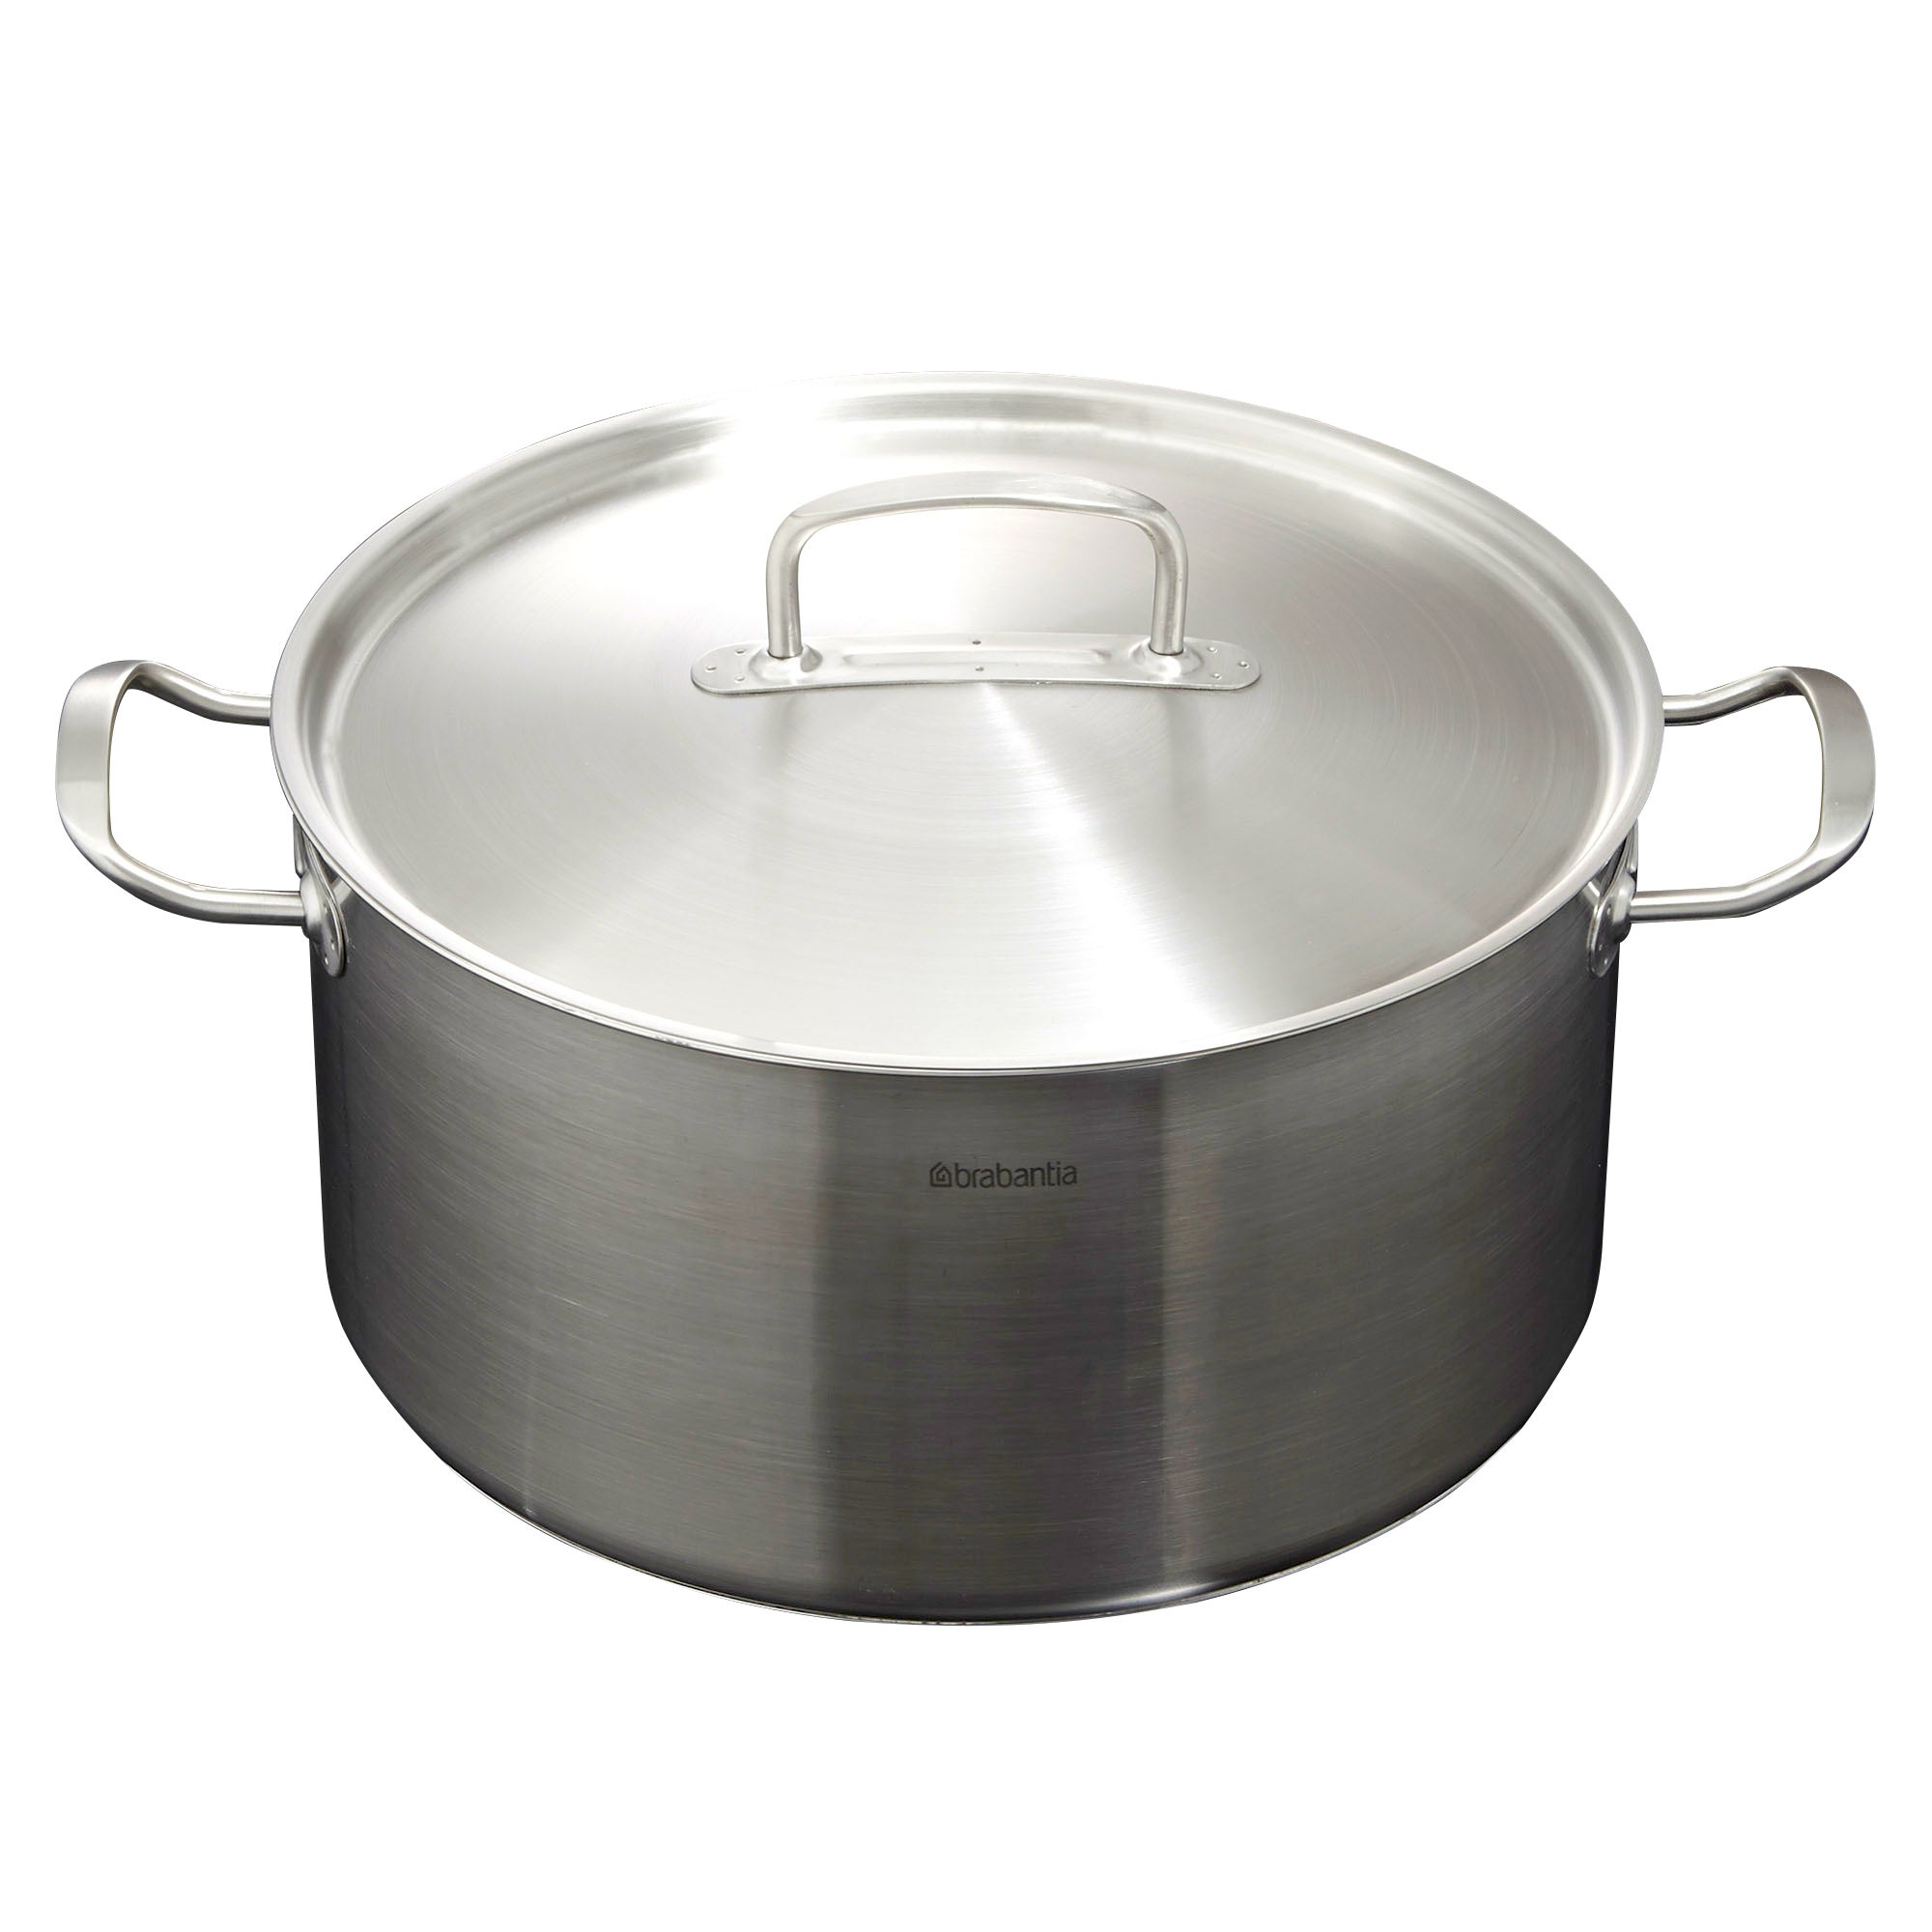 Brabantia Stainless Steel Covered Cassserole Pan